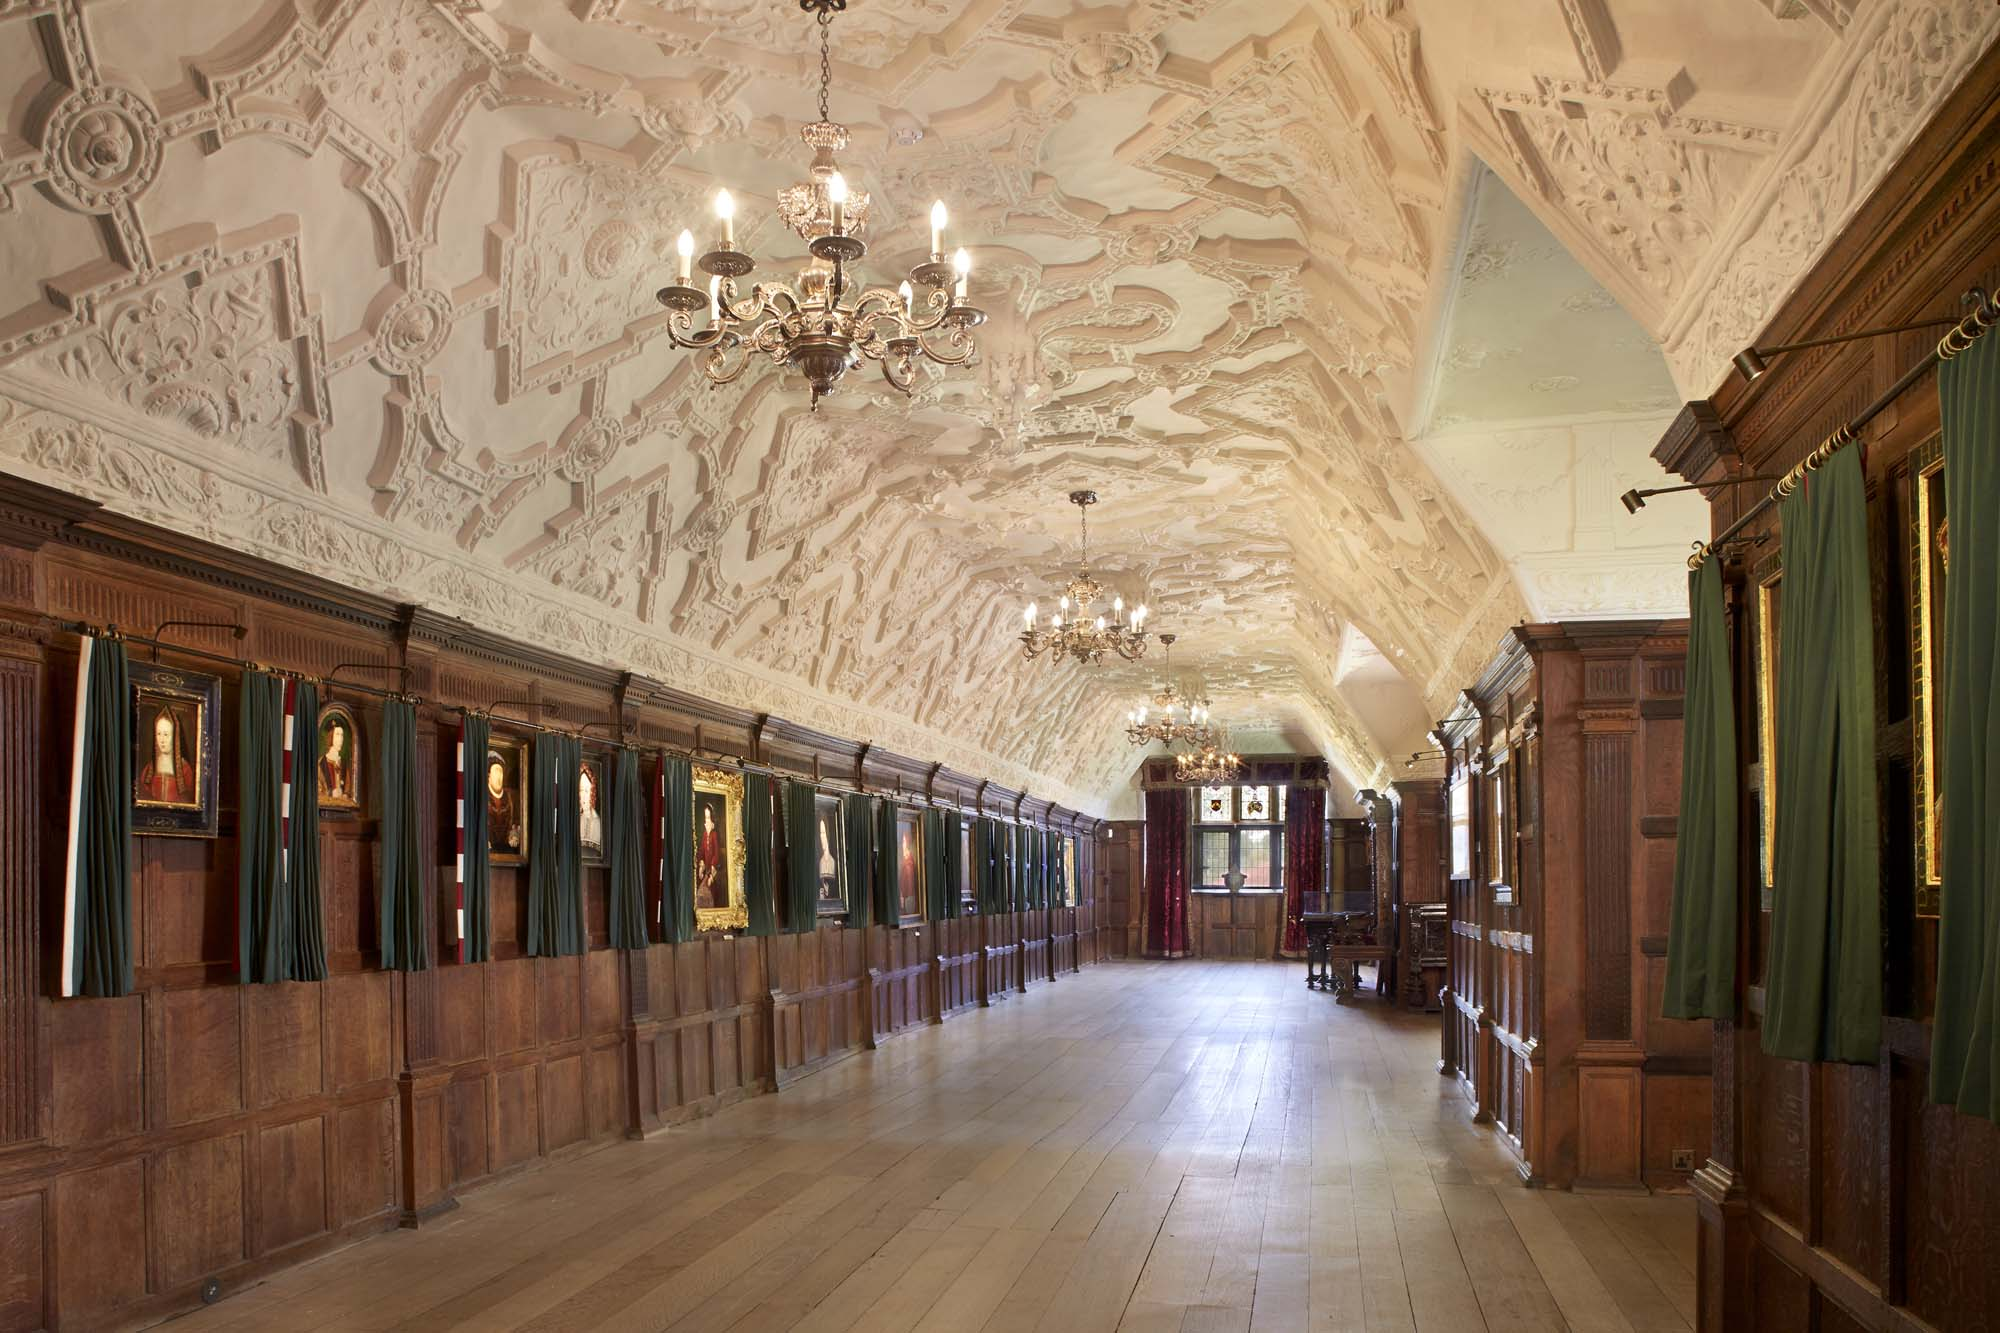 a photo of a long wood panelled room with stucco ceiling and portraits on the wall